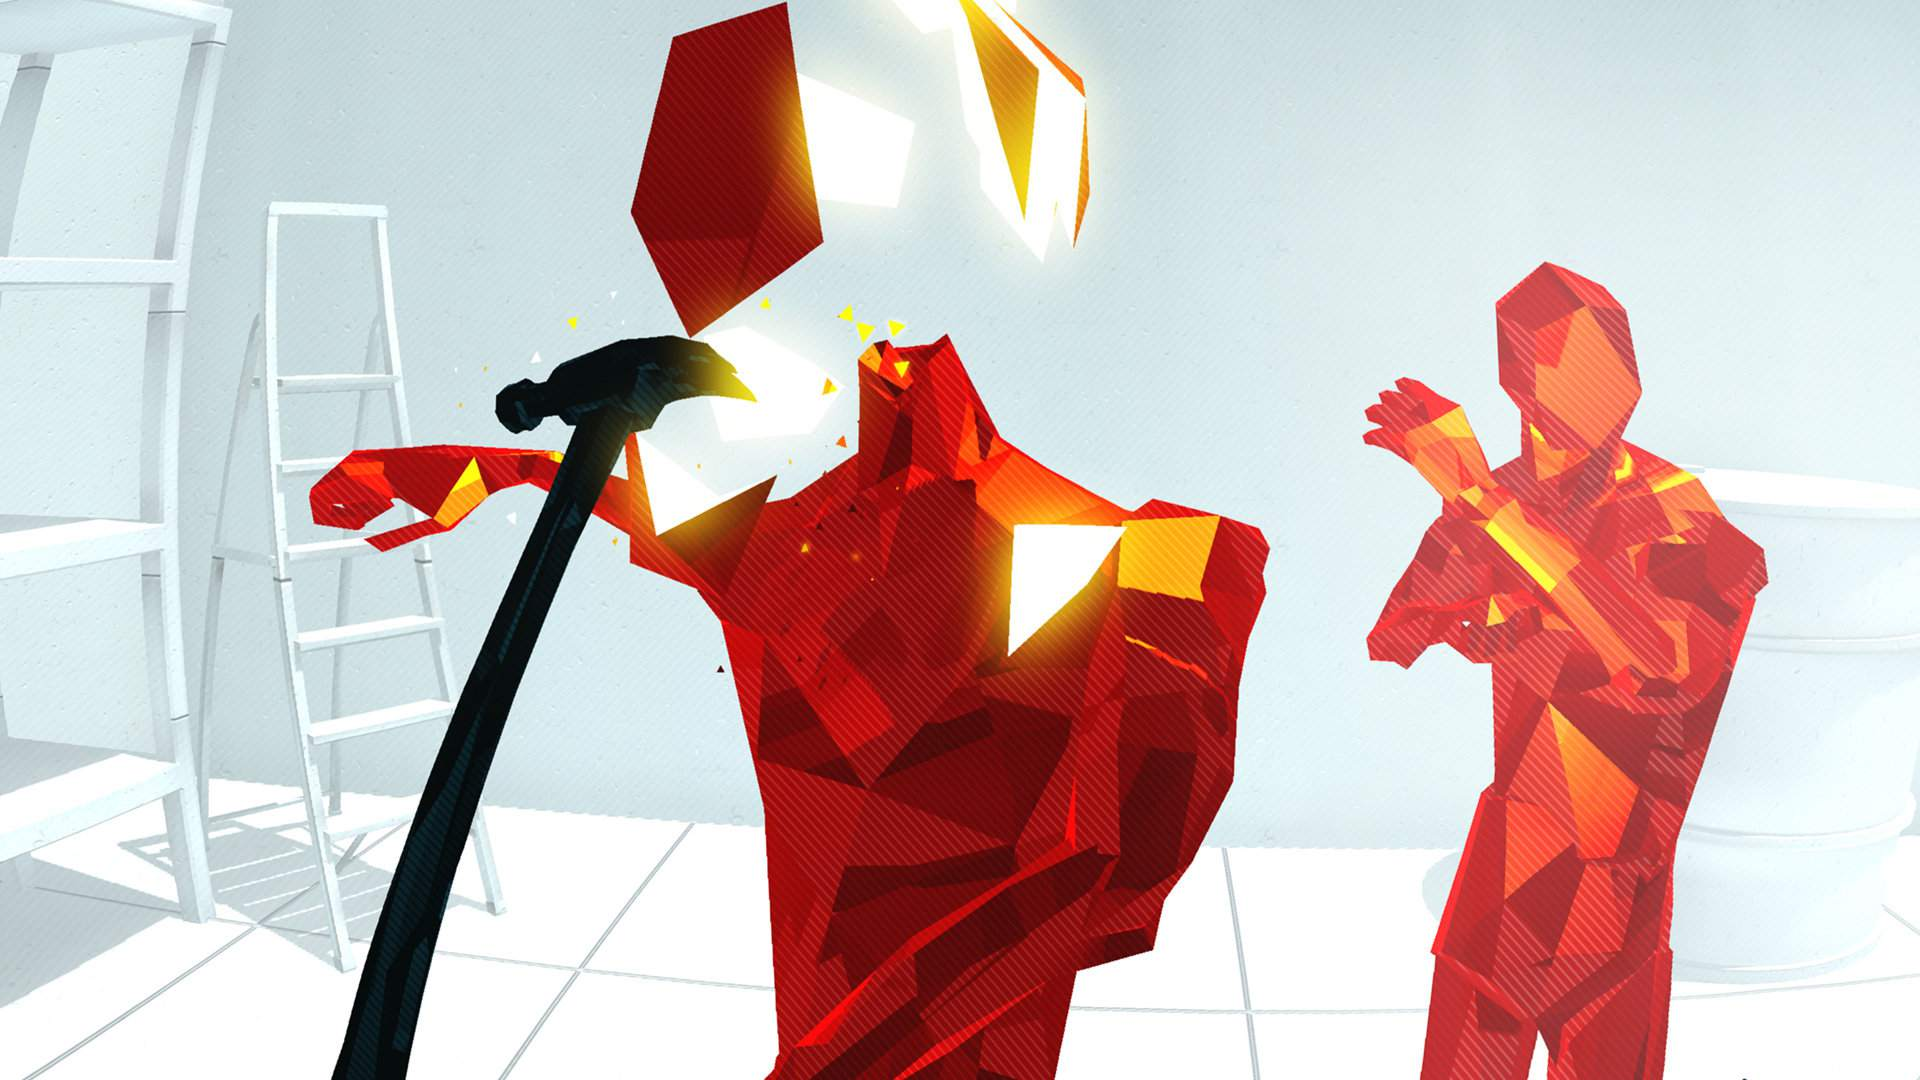 A hammer split through a red angular humanoid. Another red humanoid is in the back, surrounded by white walls.